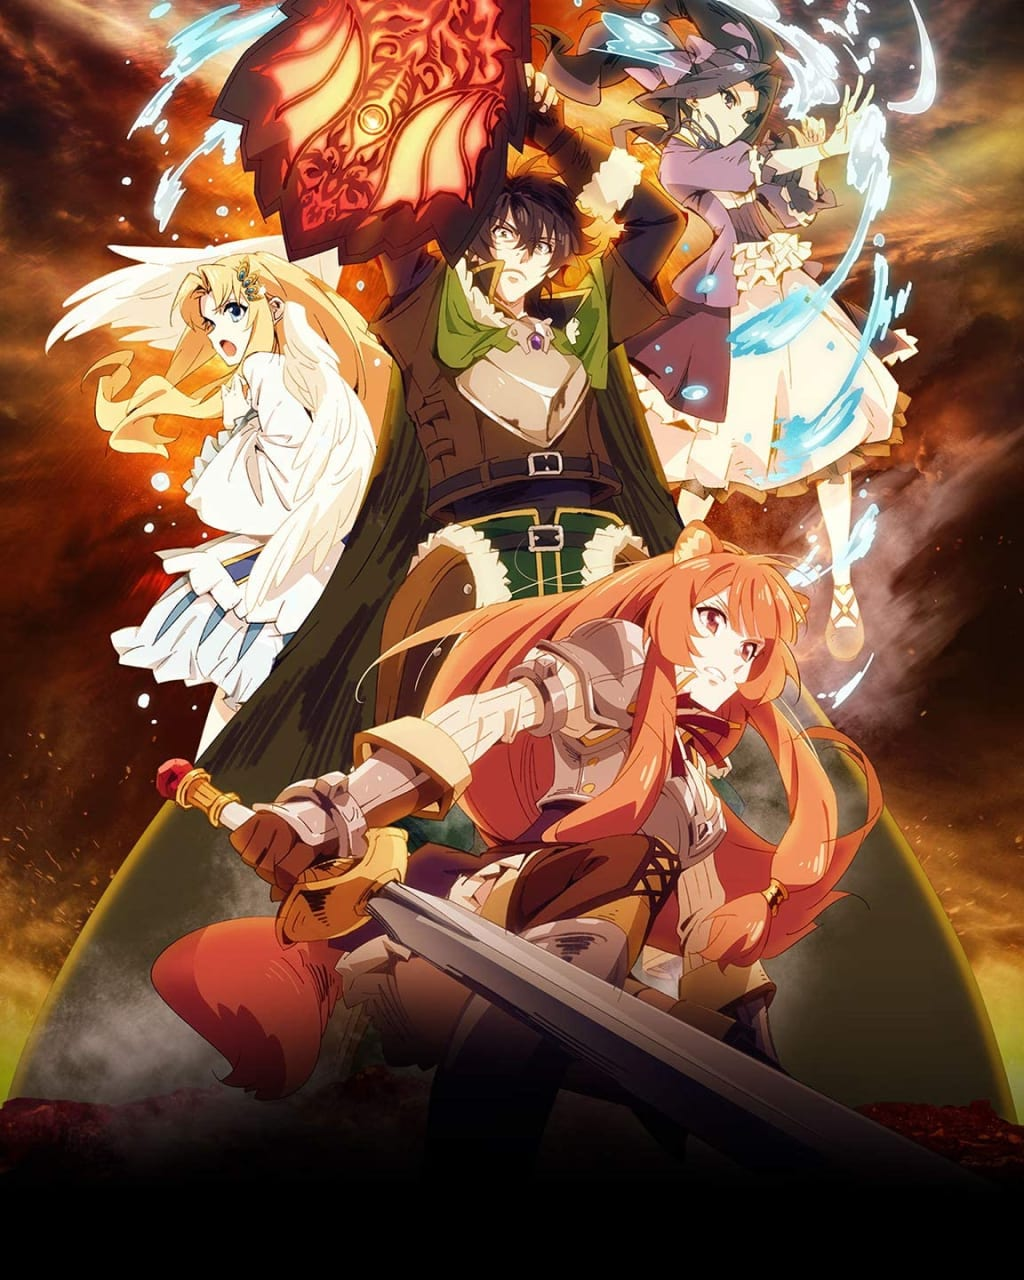 Anime to Watch: The Rising of the Shield Hero